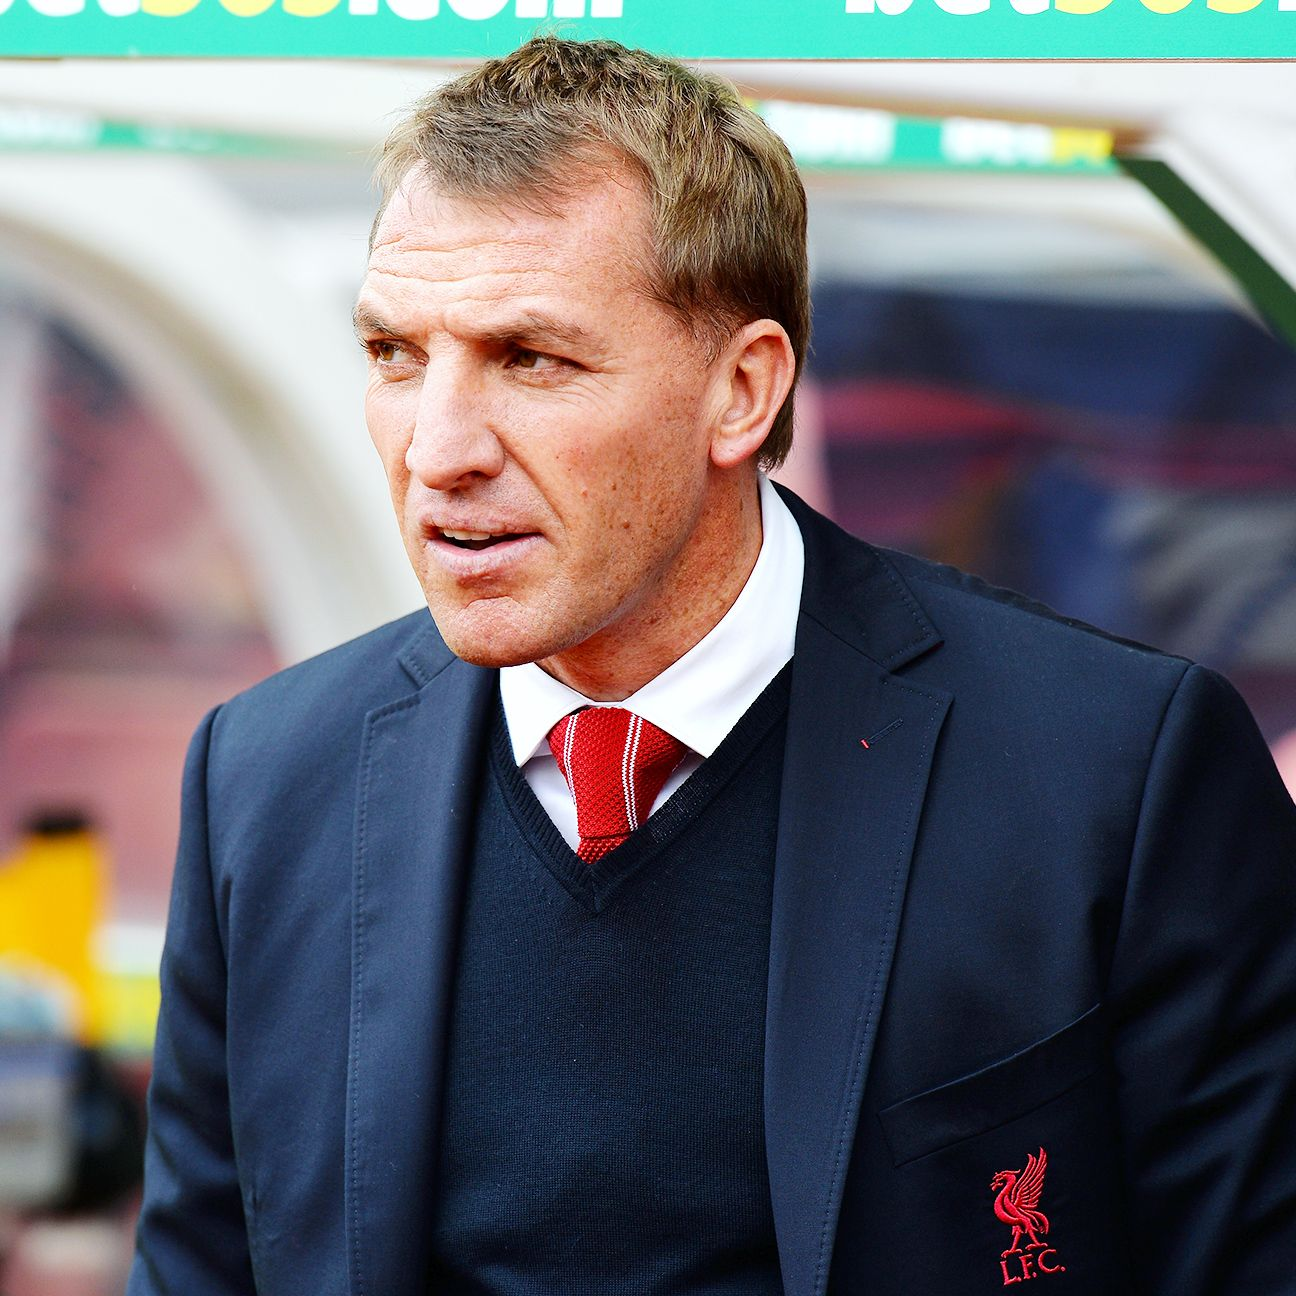 Brendan Rodgers could soon find himself on the hot seat should Liverpool fail to make any inroads before the turn of the year.